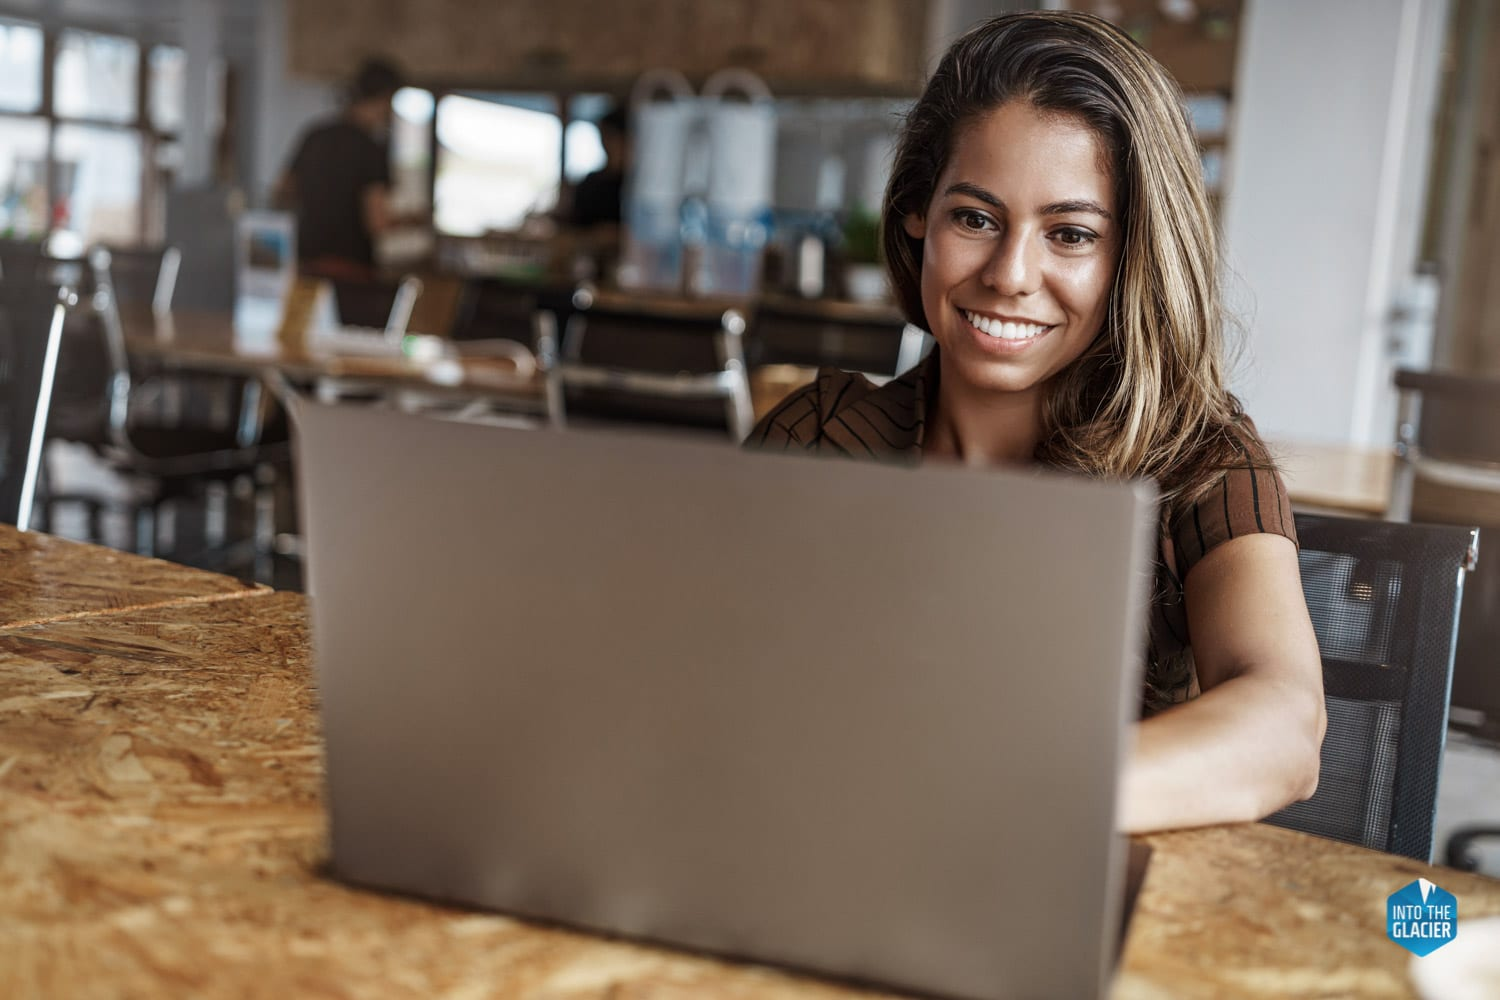 Latin woman sitting in front of laptop